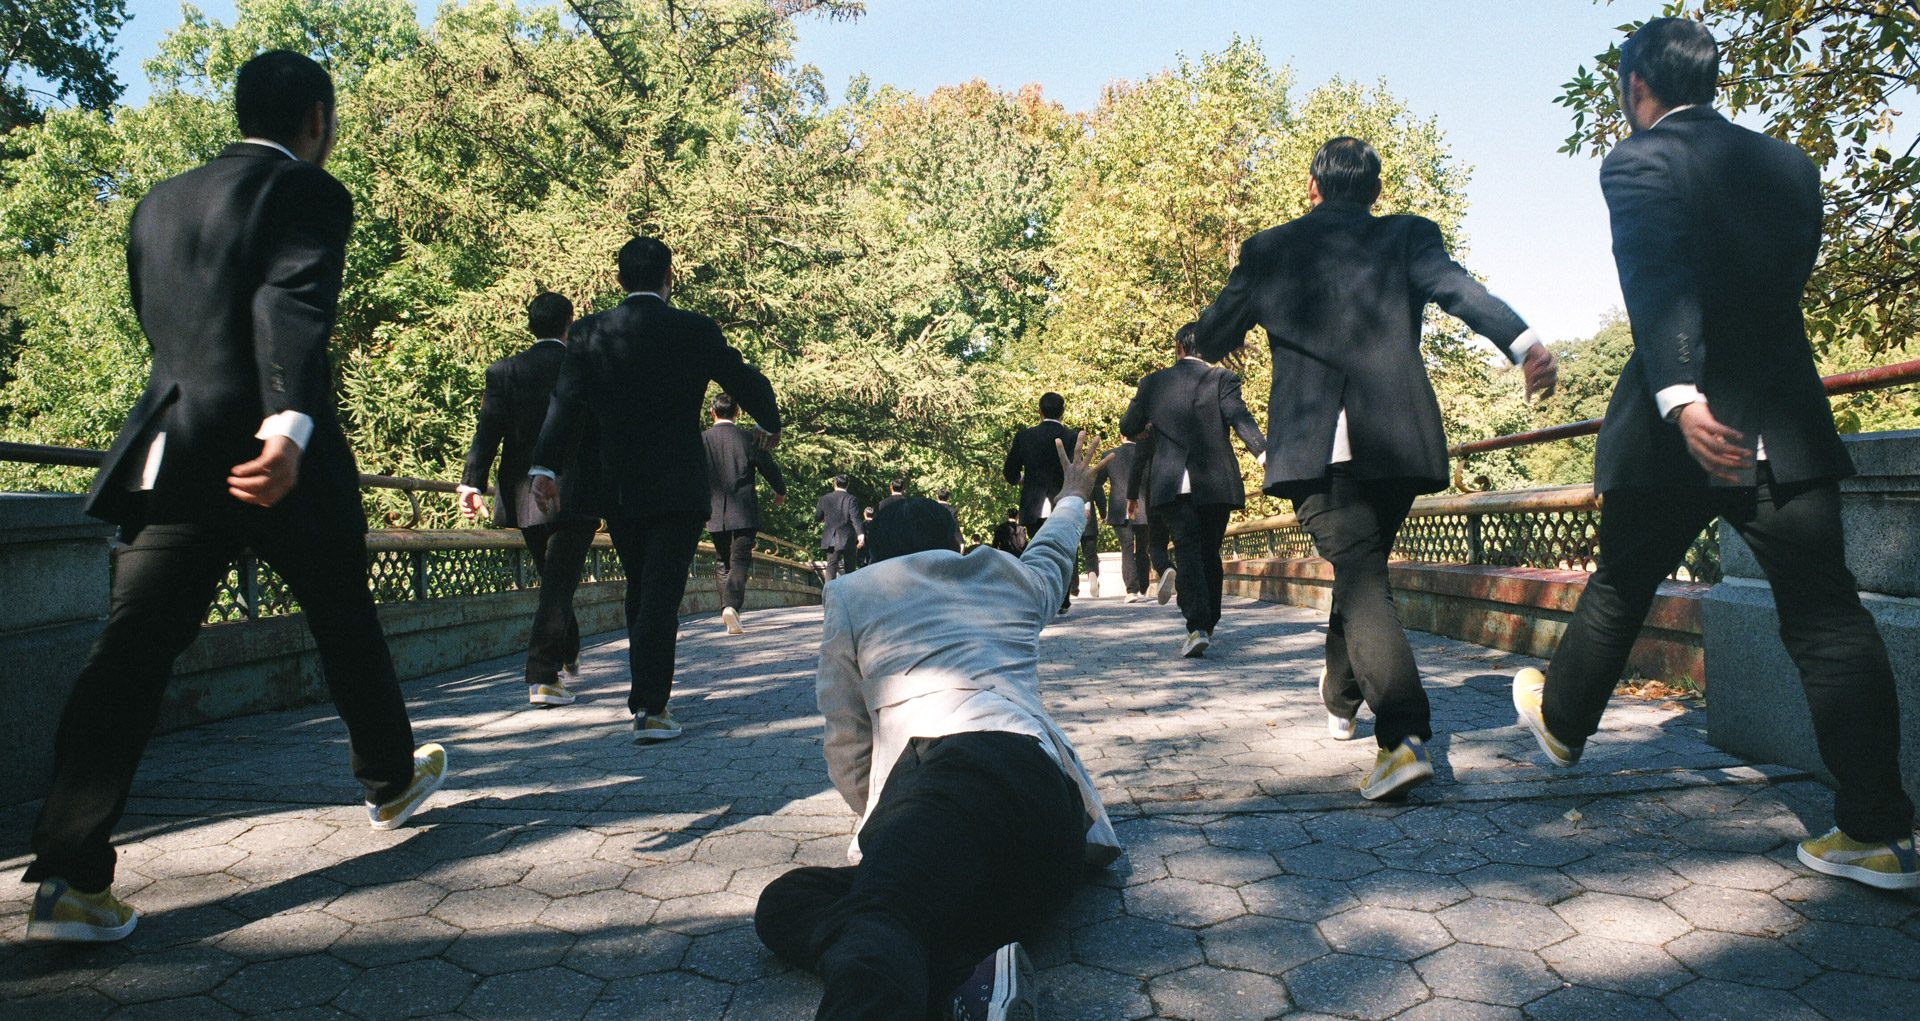 One asian in a white suit on the ground reaching out, a group of asians in dark suits walking past him.